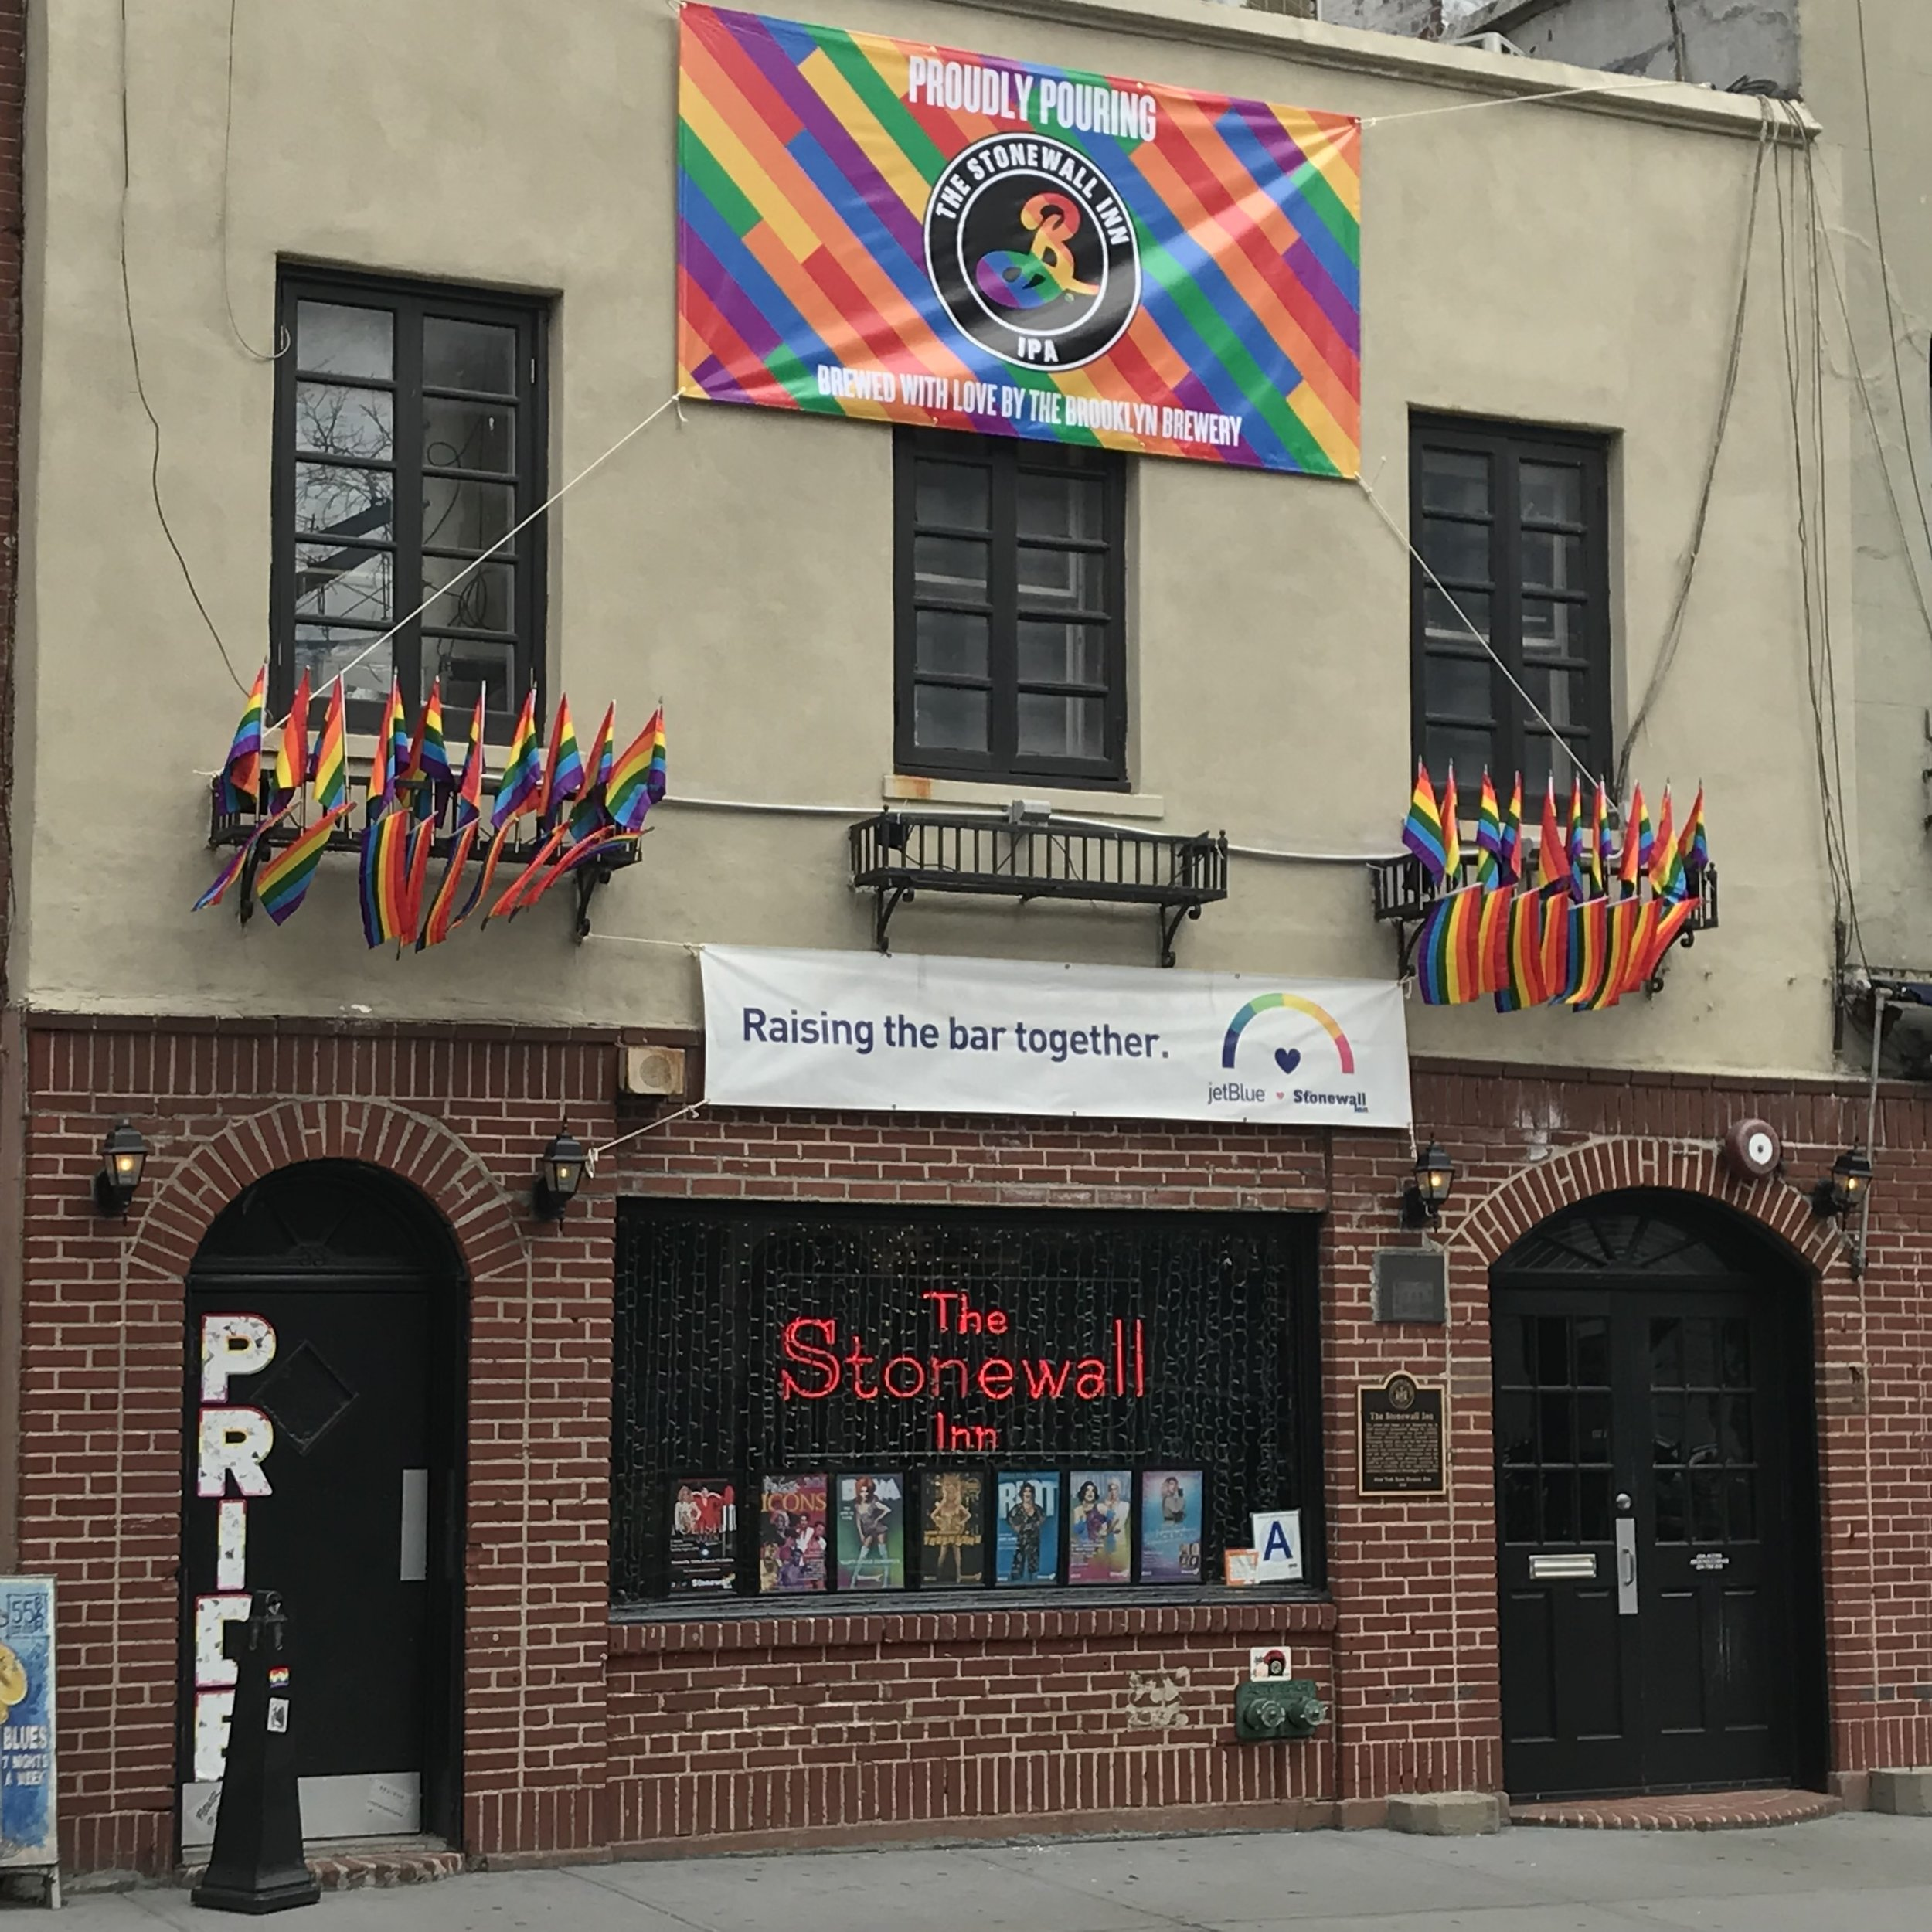 Stonewall Inn, with new Brooklyn Brewery banner.